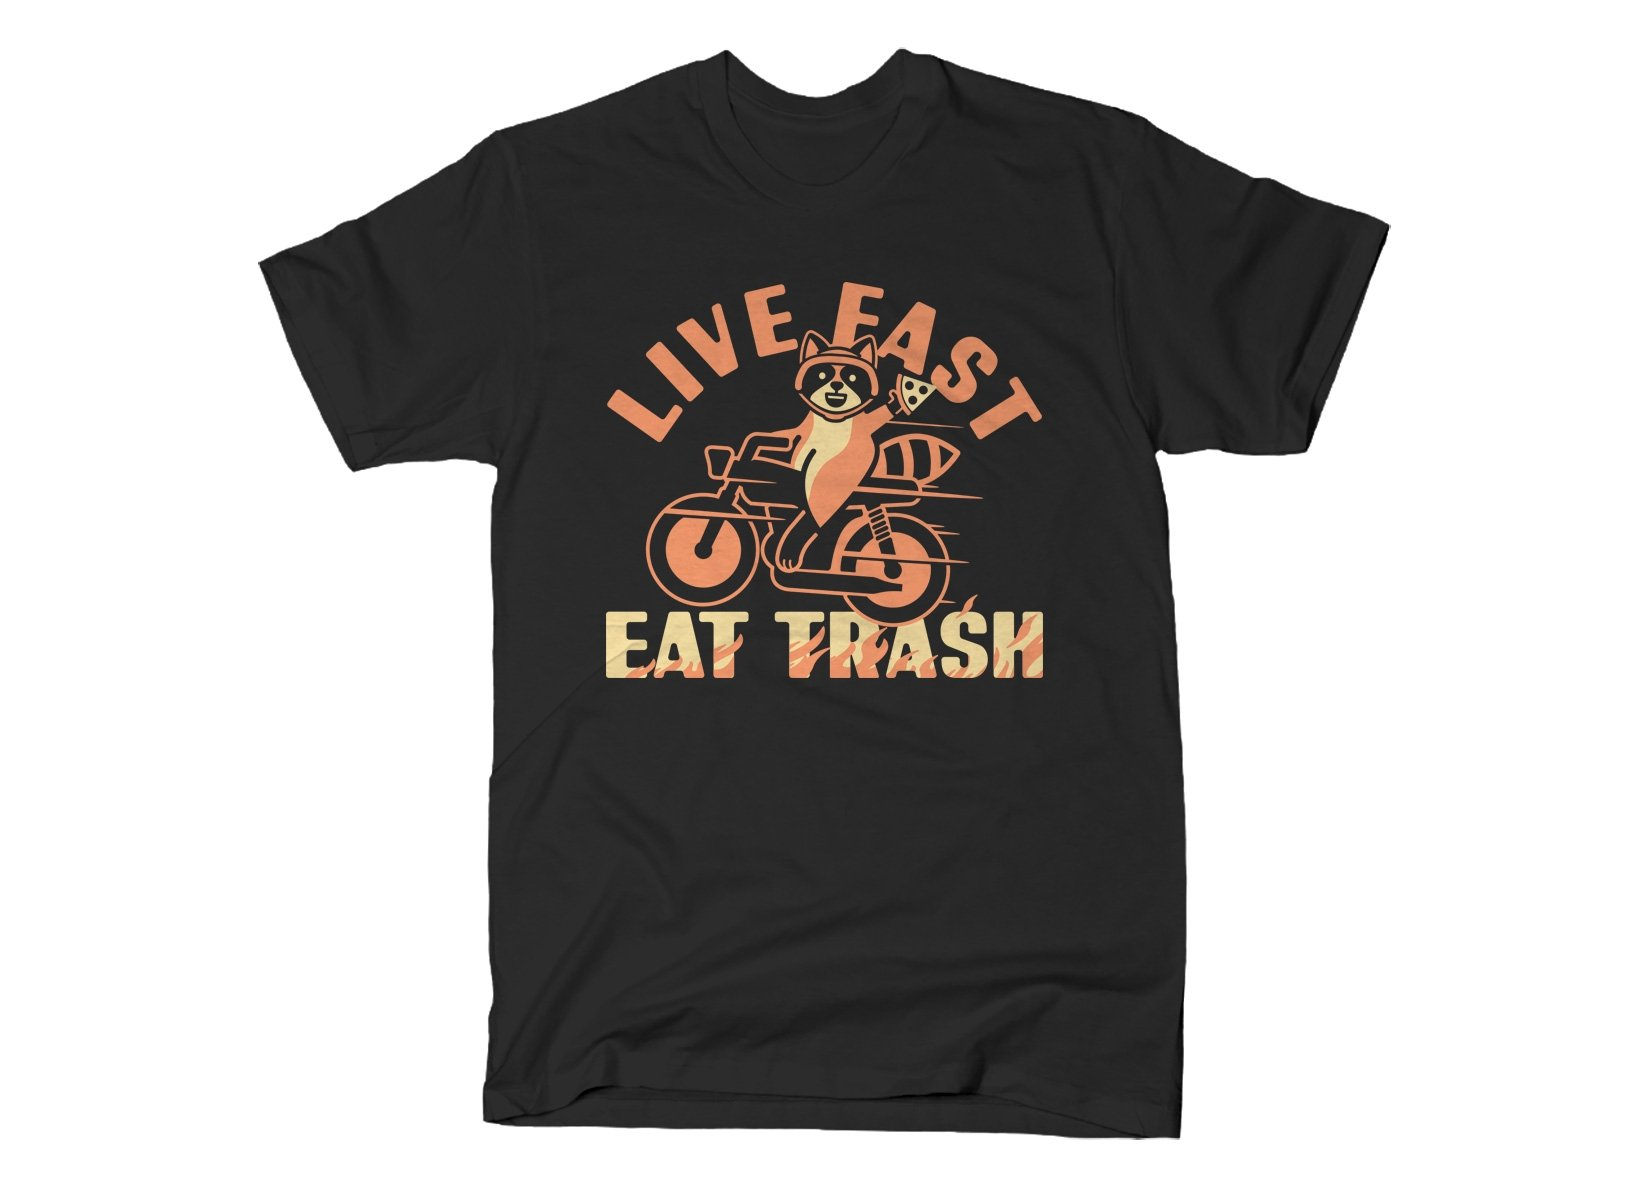 Live Fast Eat Trash on Mens T-Shirt